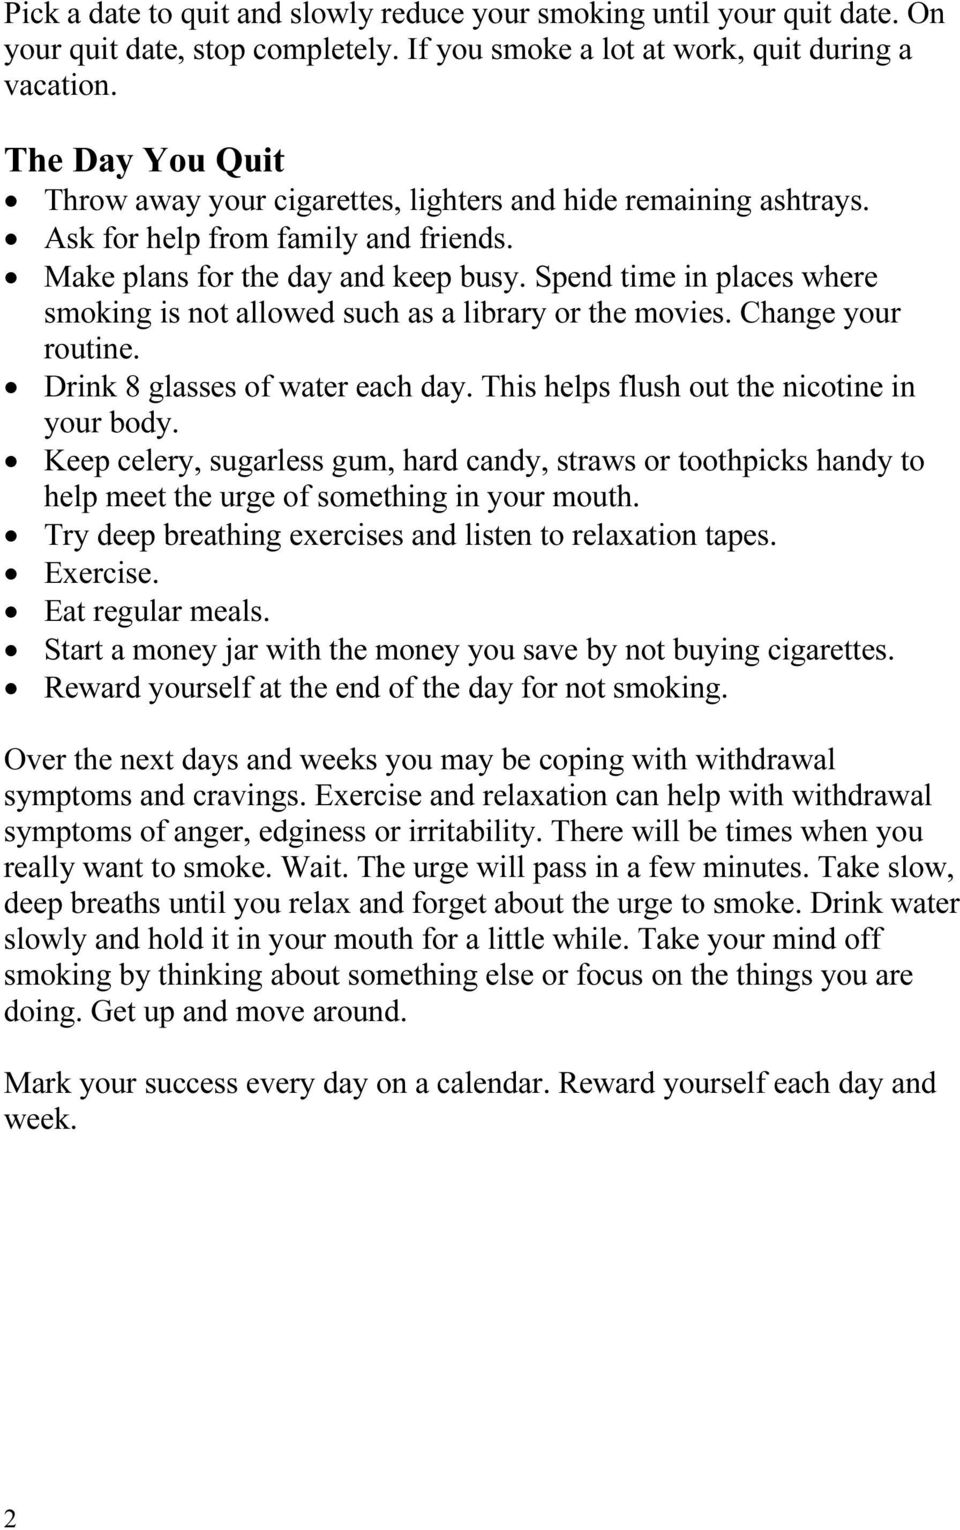 Spend time in places where smoking is not allowed such as a library or the movies. Change your routine. Drink 8 glasses of water each day. This helps flush out the nicotine in your body.